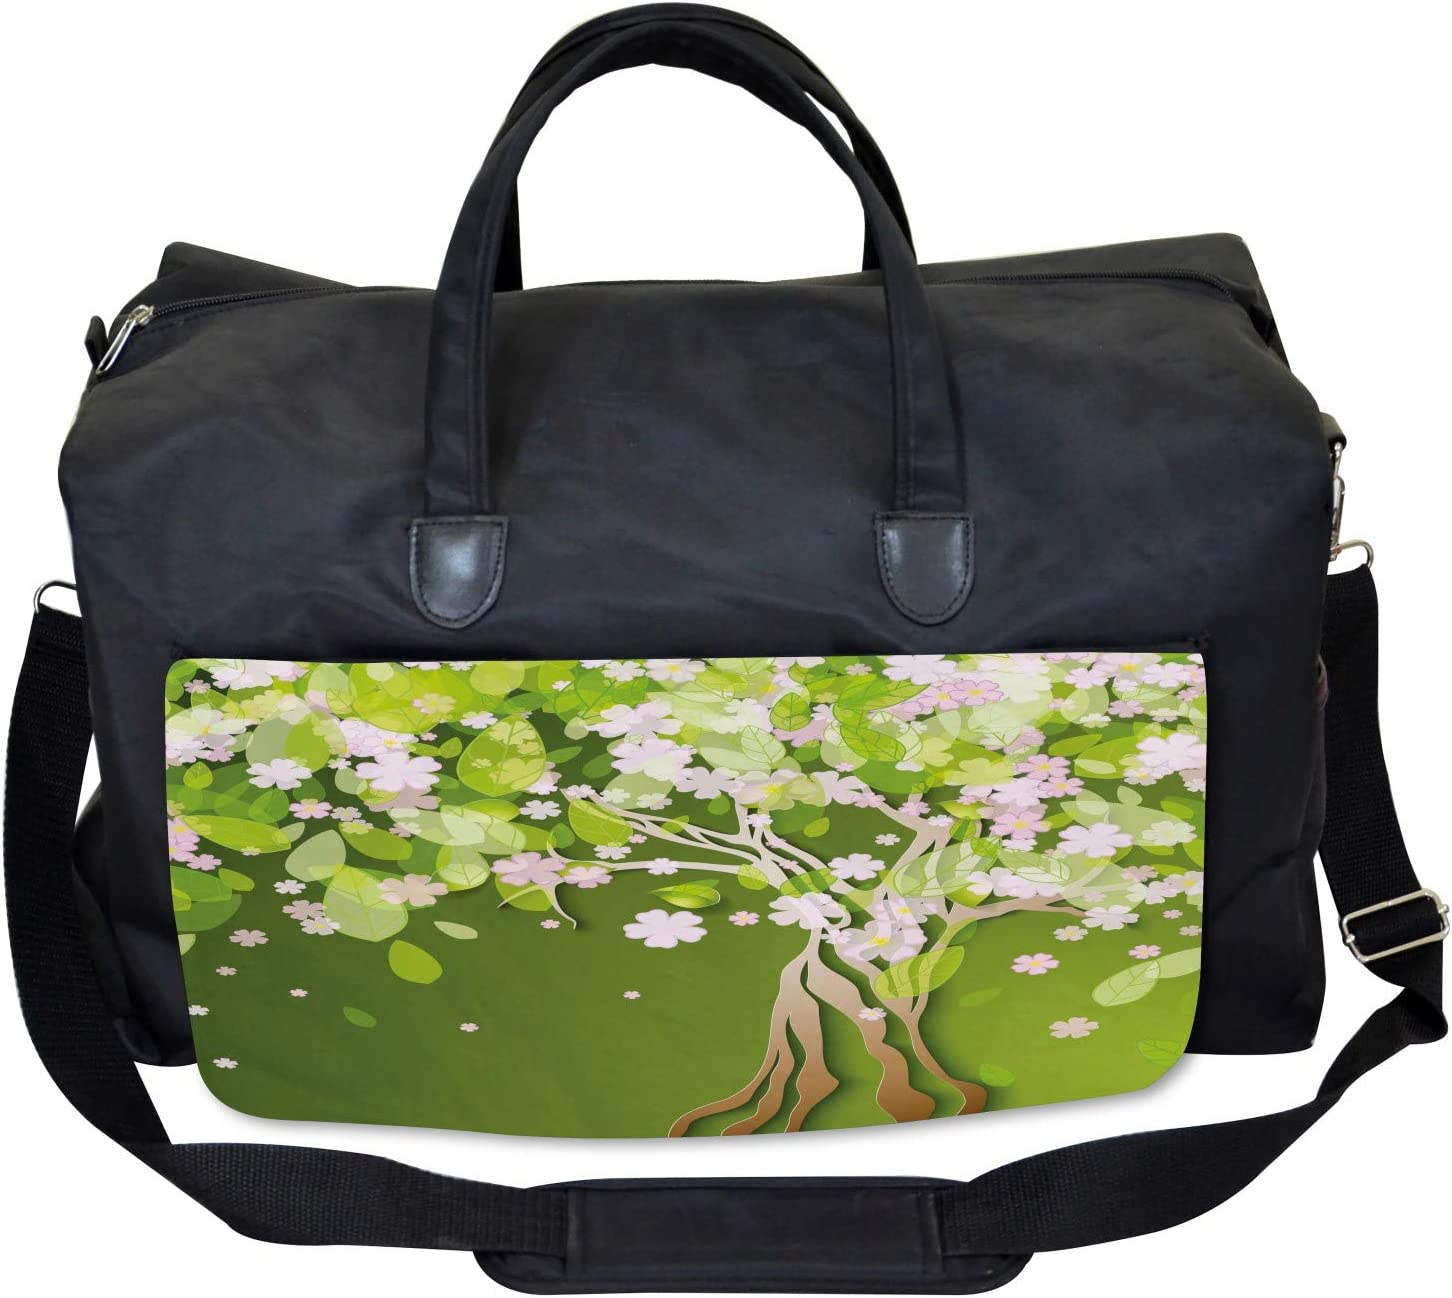 Ambesonne Tree Gym Bag Blossoming Petals Florets Large Weekender Carry-on